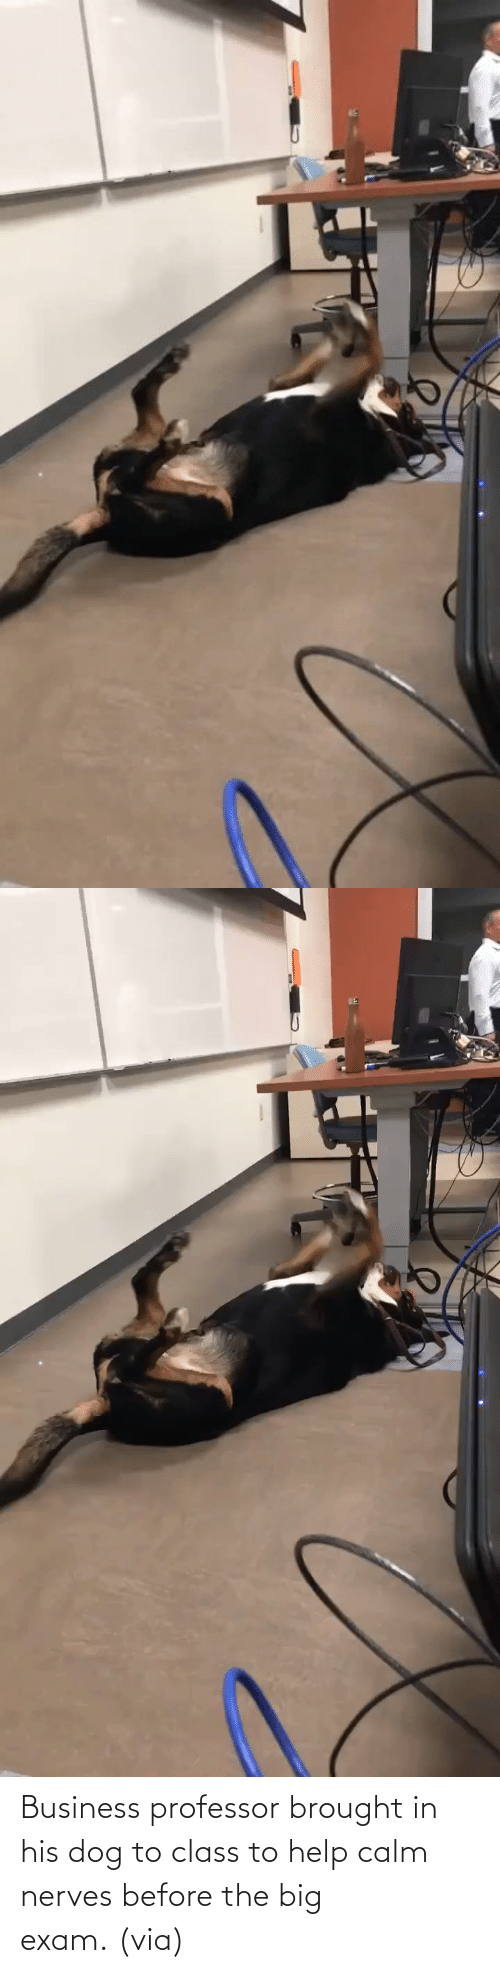 Help: Business professor brought in his dog to class to help calm nerves before the big exam. (via)